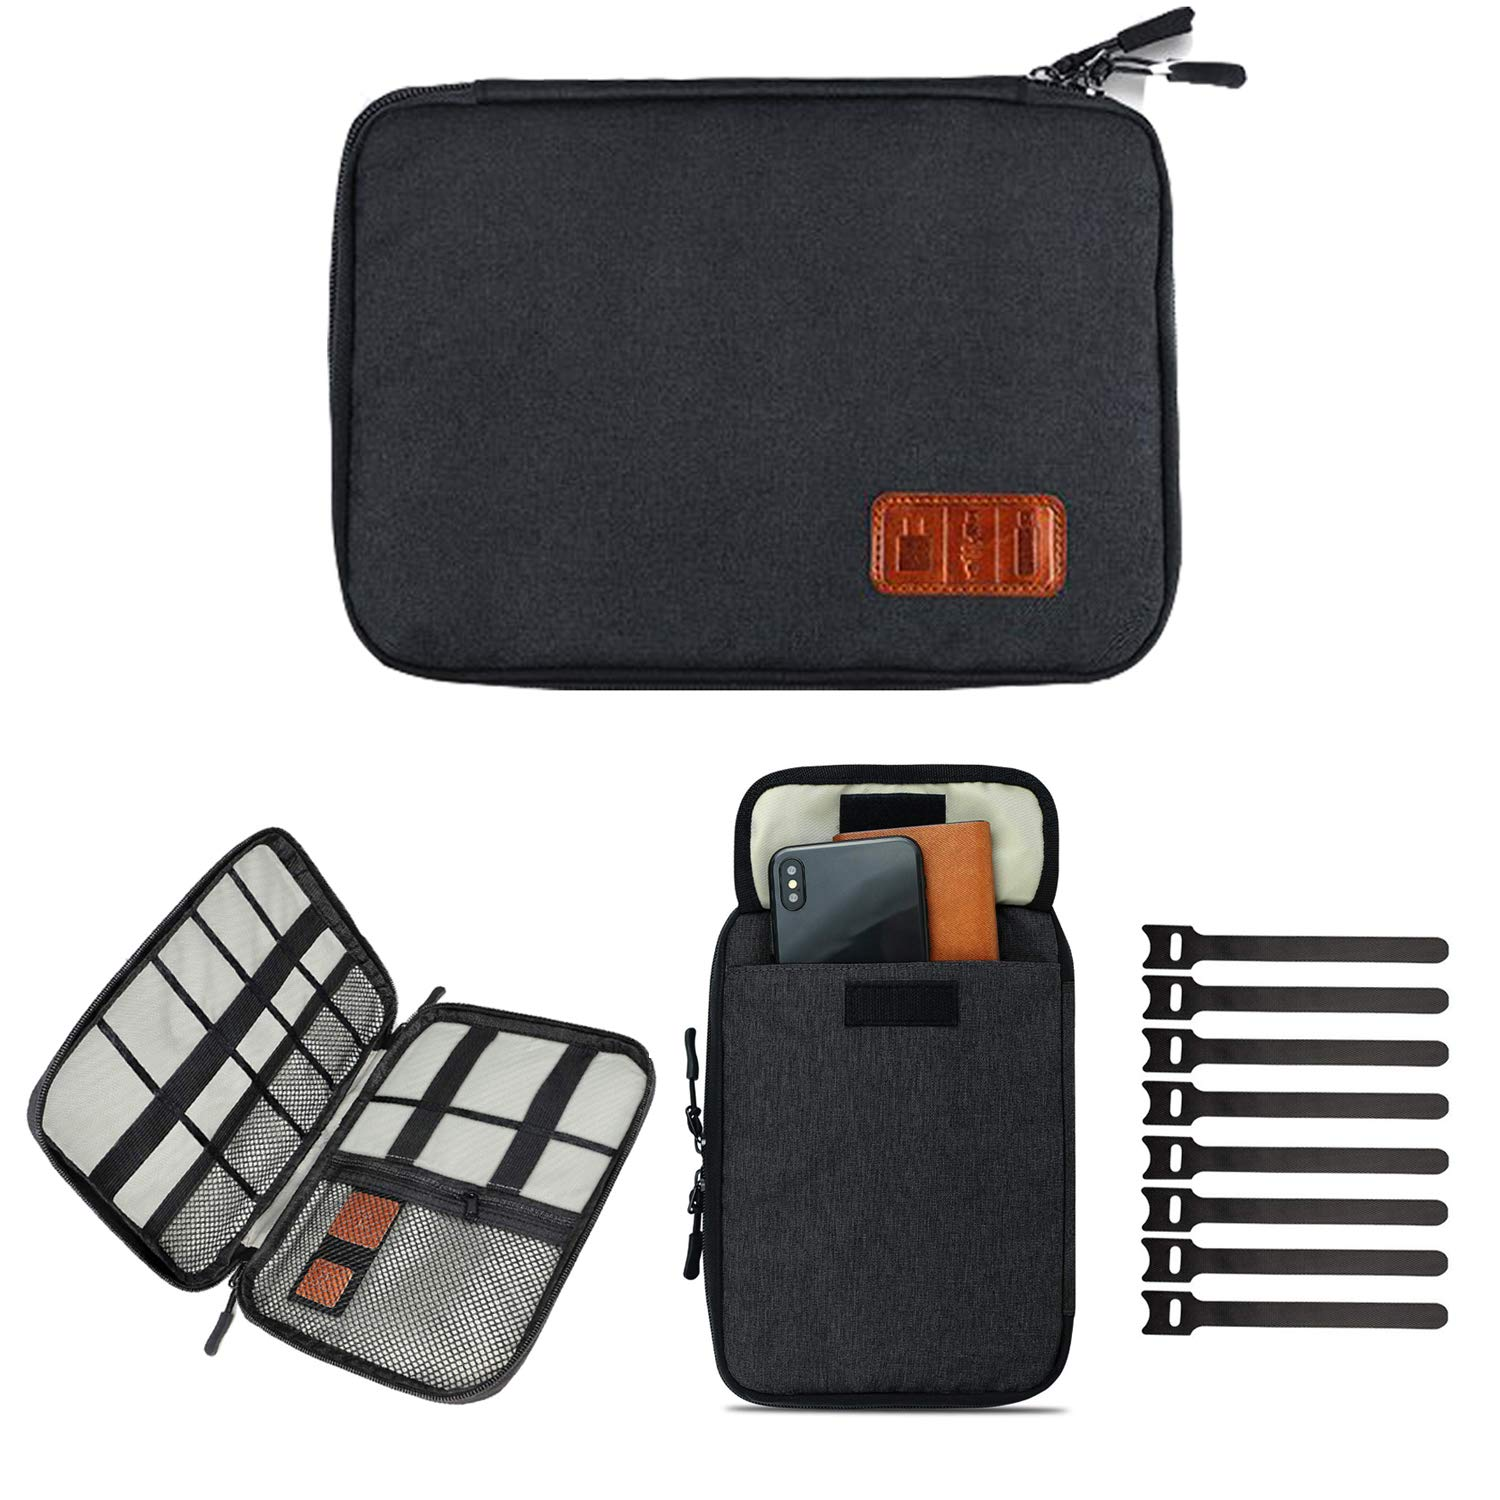 Cable Organizer Bag,Travel Electronics Accessories Case with 8 Cable Ties for USB Cable Cord, Accessories Storage Bag for Pen Hard Cables Earphone Ipad iPhone (Up to 7.9)